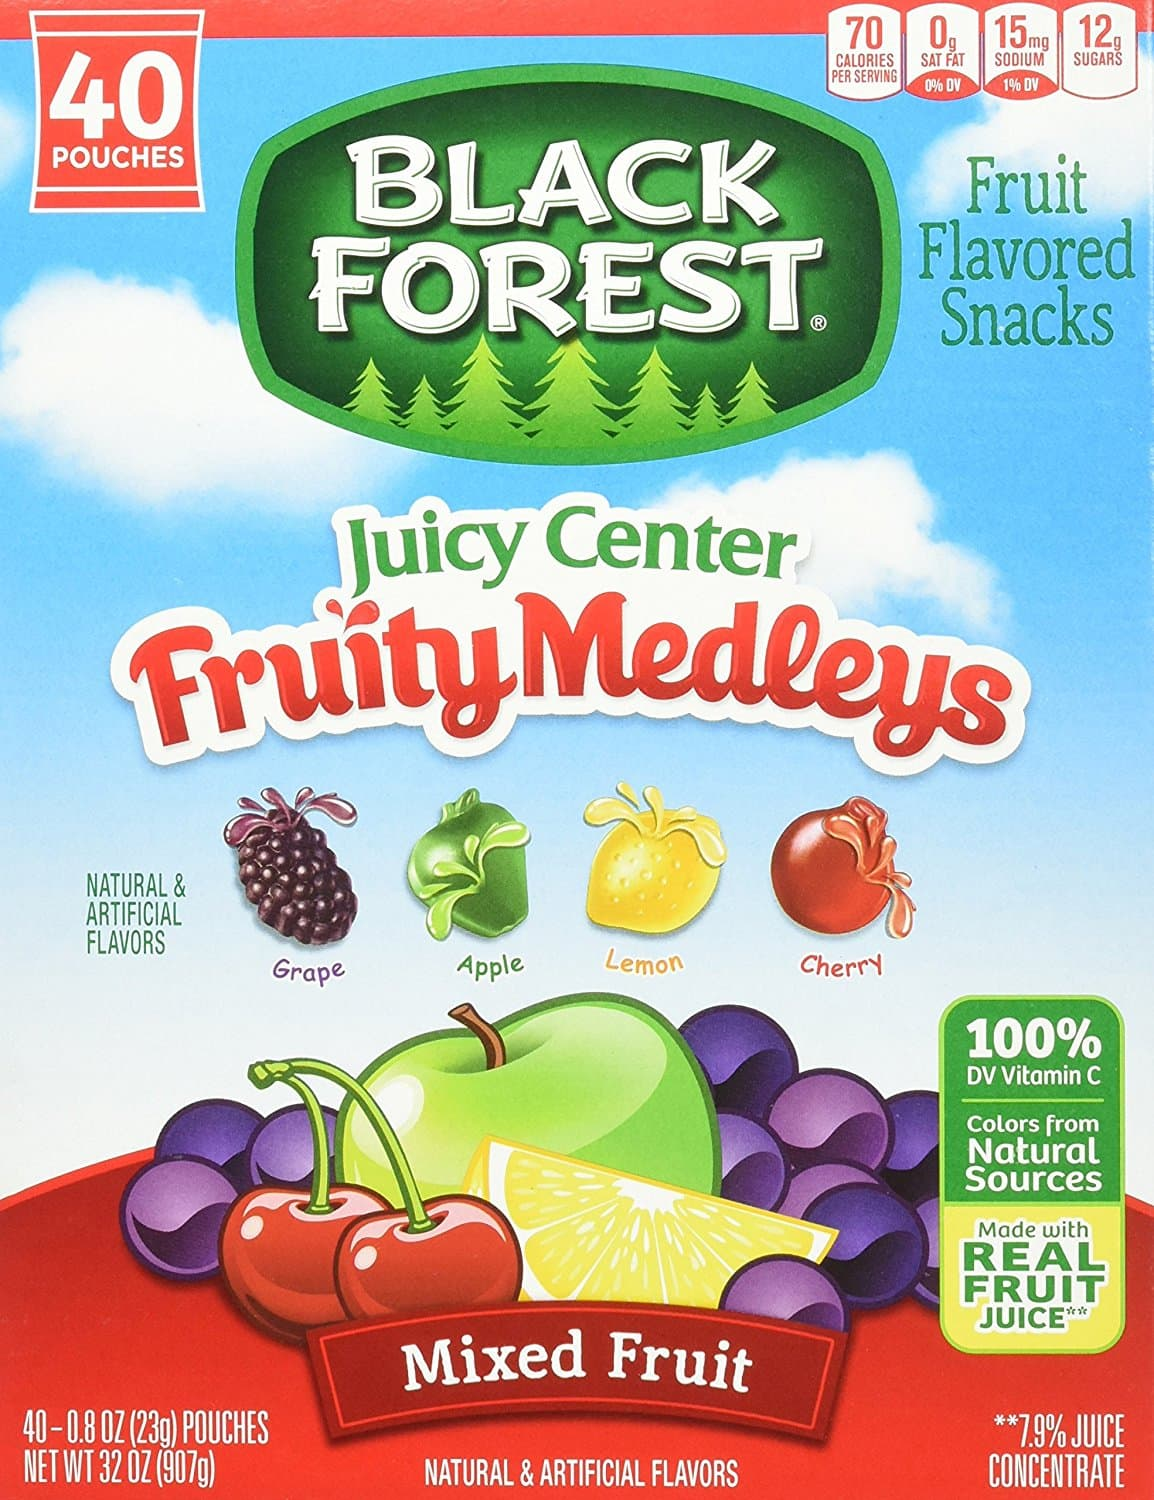 Black Forest Medley Juicy Center Fruit Snacks, 40 count - $5.79 after SS and 20% coupon